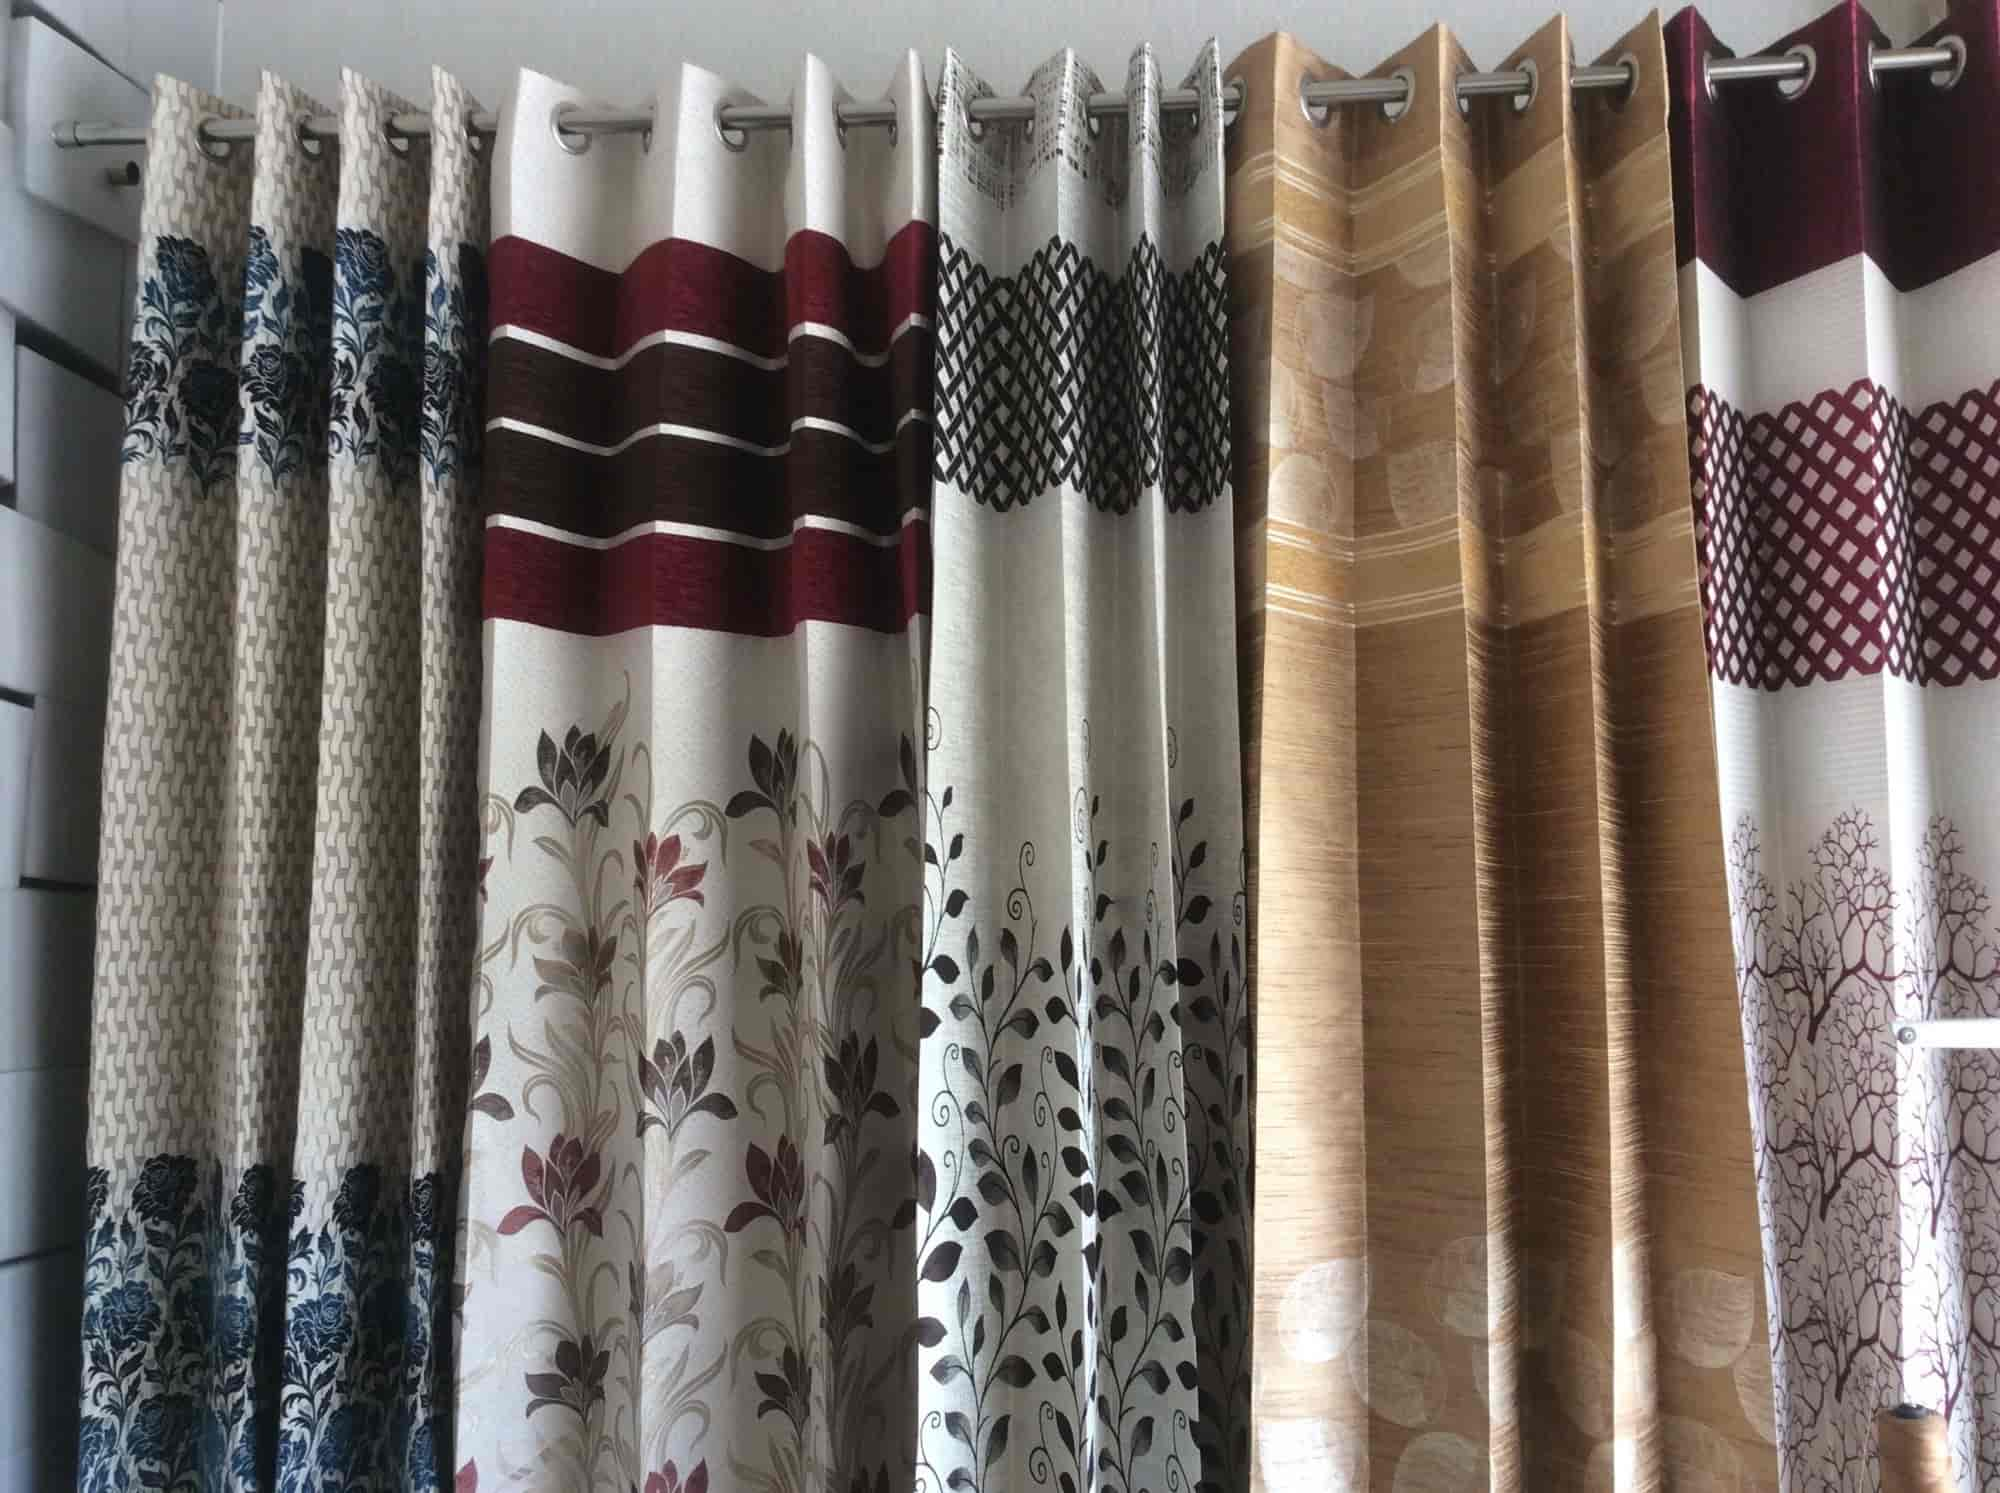 project from curtain chennai strip kerala bangalore curtains online home pvc hyderabad india